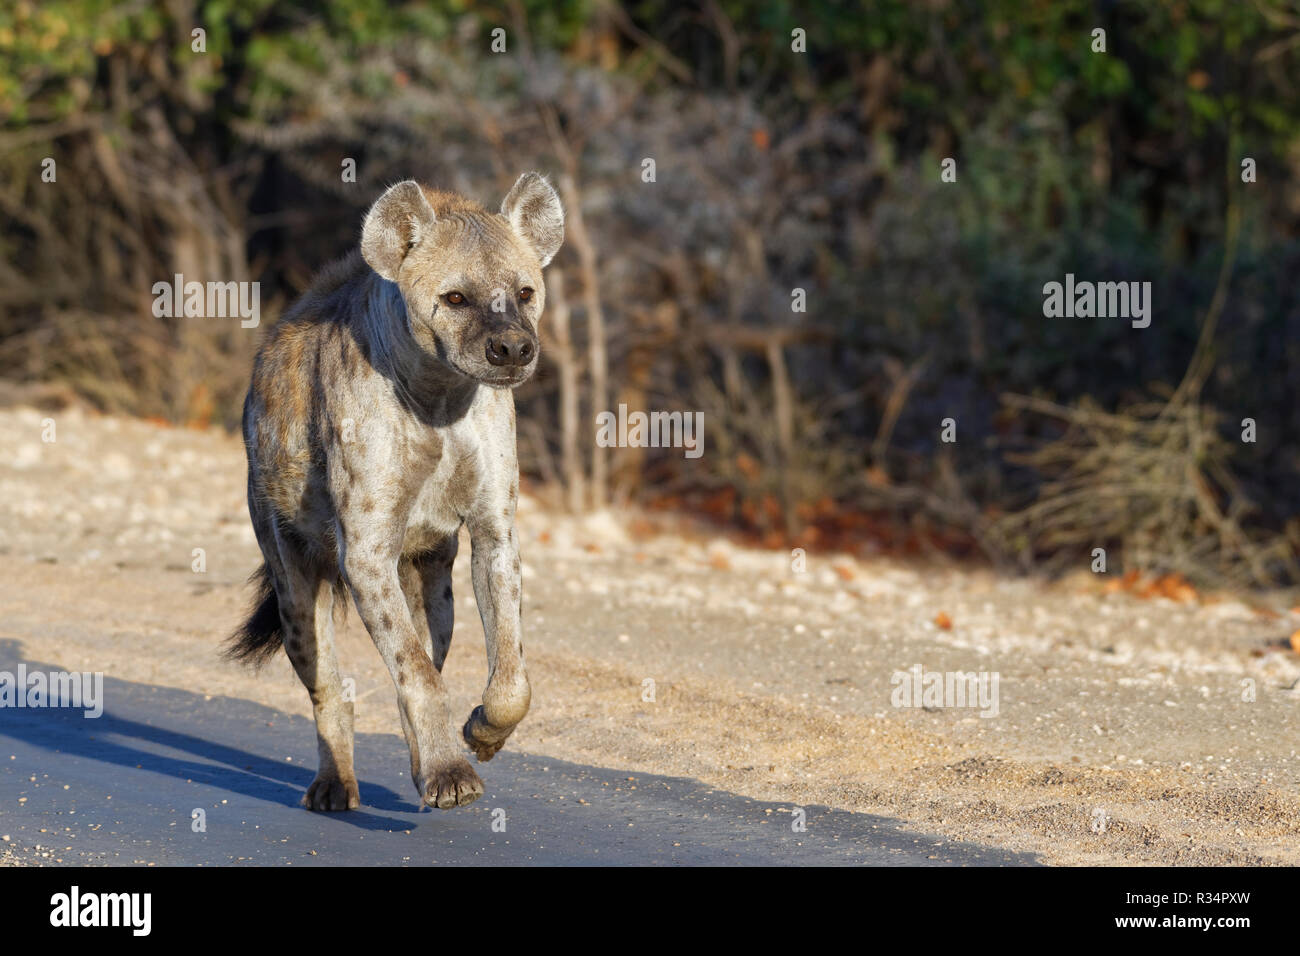 Spotted hyena or Laughing hyena (Crocuta crocuta), adult female running along a tarred road, in the morning light, Kruger National Park, South Africa Stock Photo